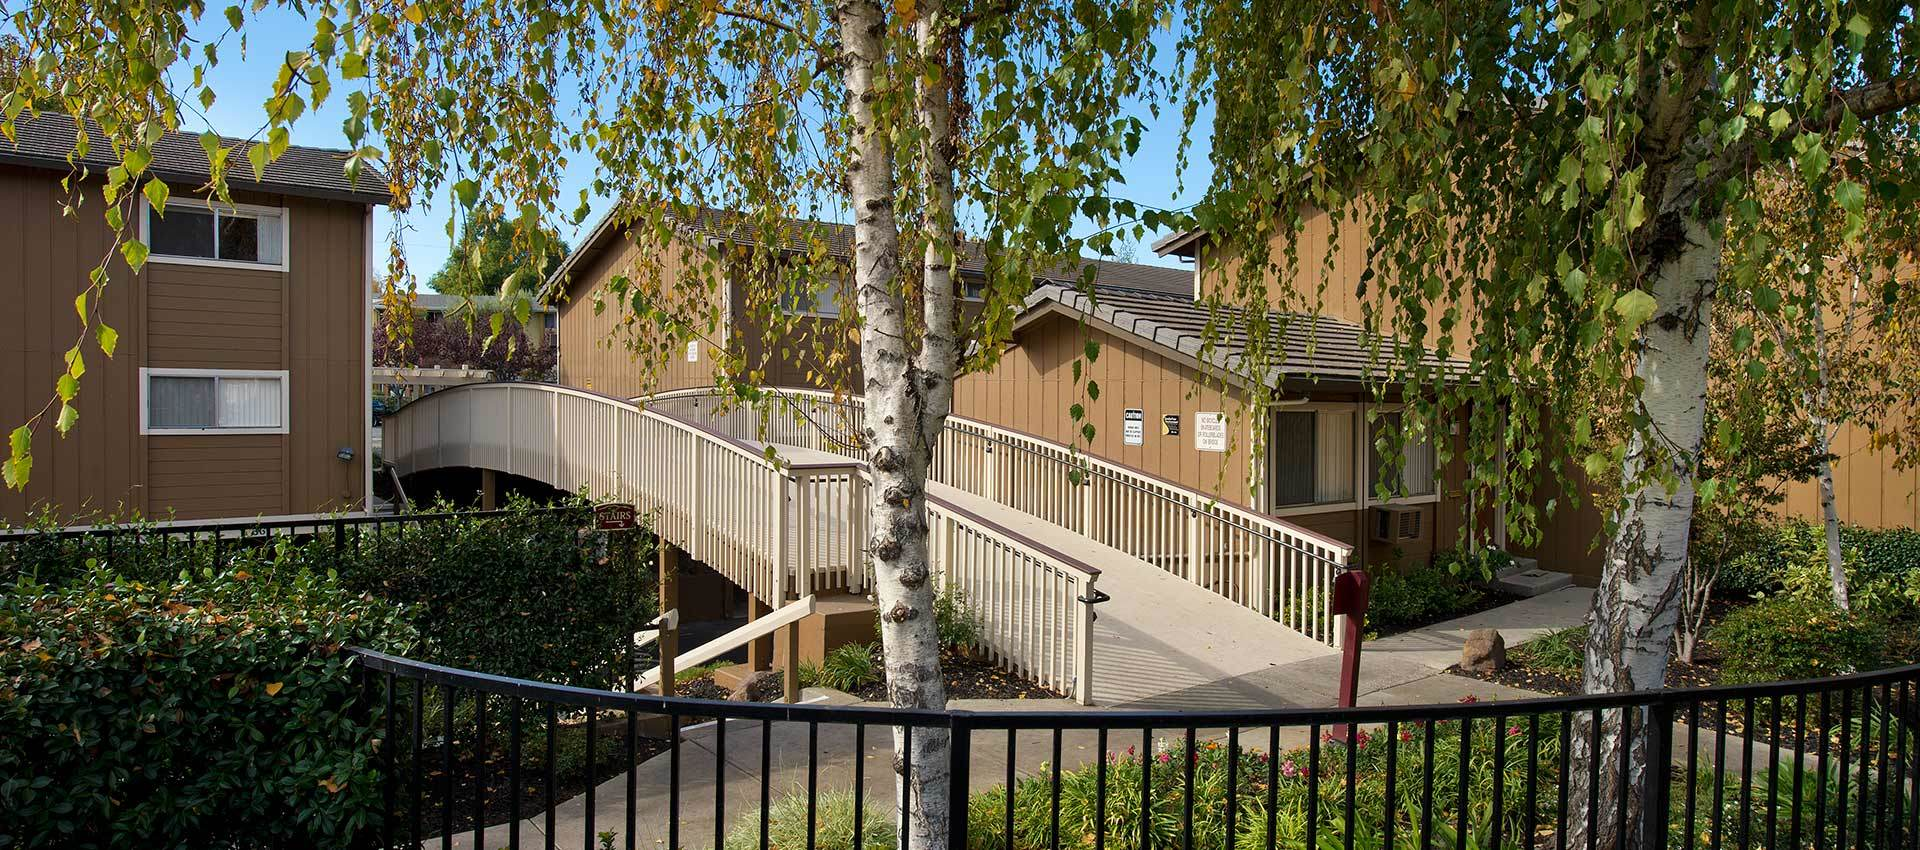 Mature Landscaping at Shadow Oaks Apartment Homes in Cupertino